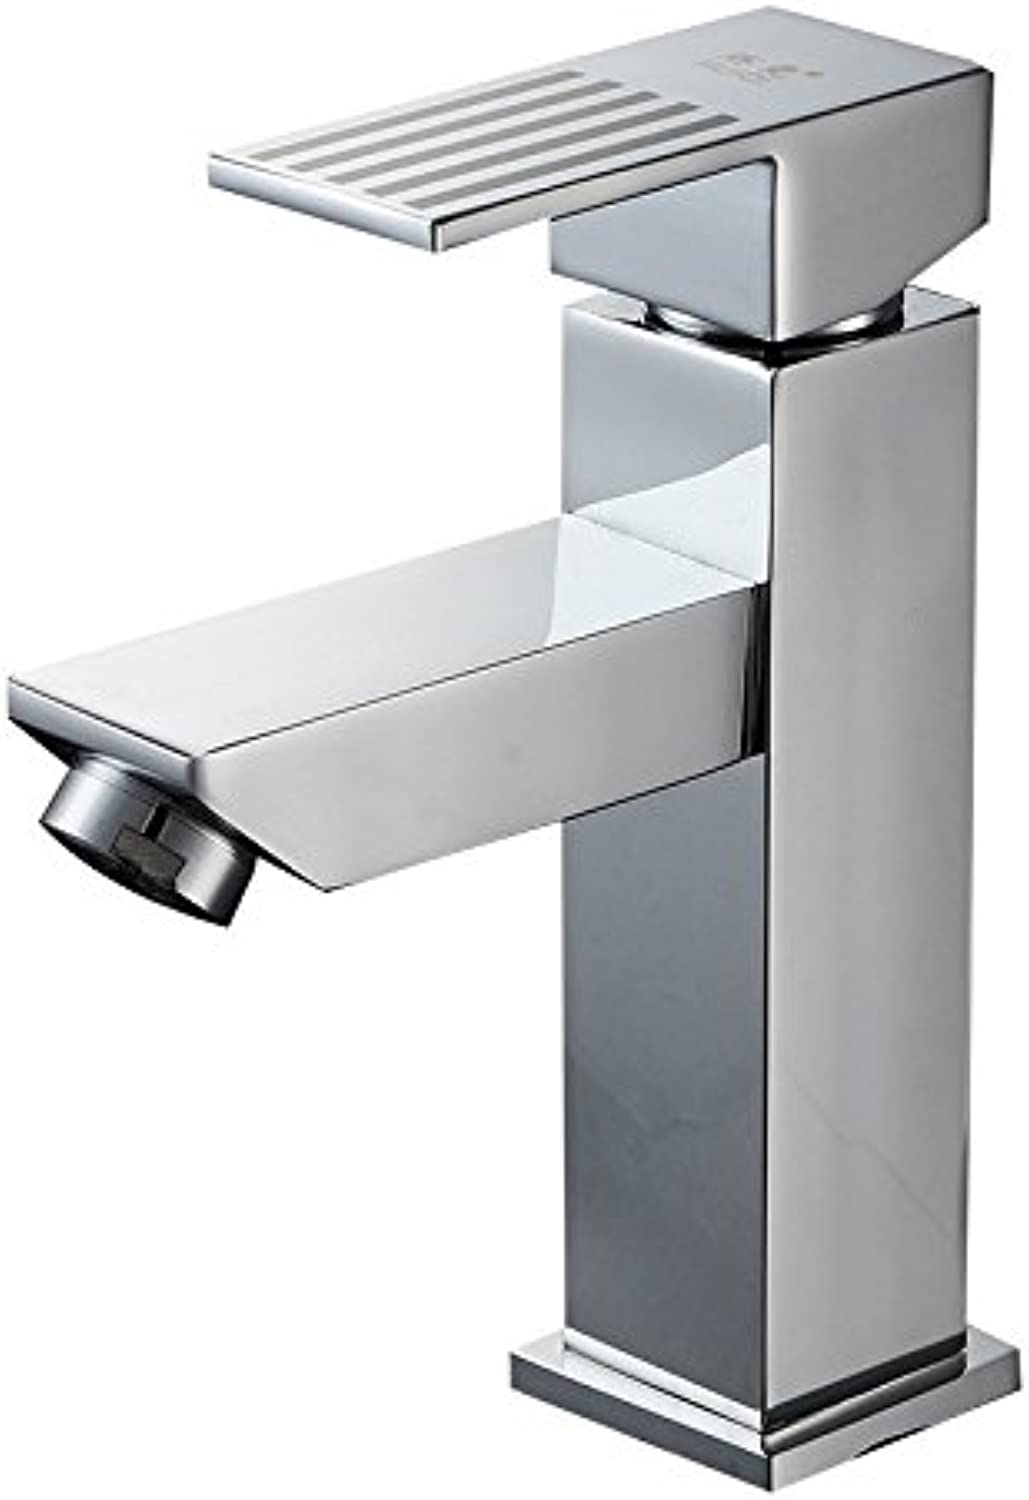 redOOY Taps All-Copper Square Single Single Hole Hot And Cold Basin Faucet Copper Hot And Cold Faucet Above Counter Basin Faucet